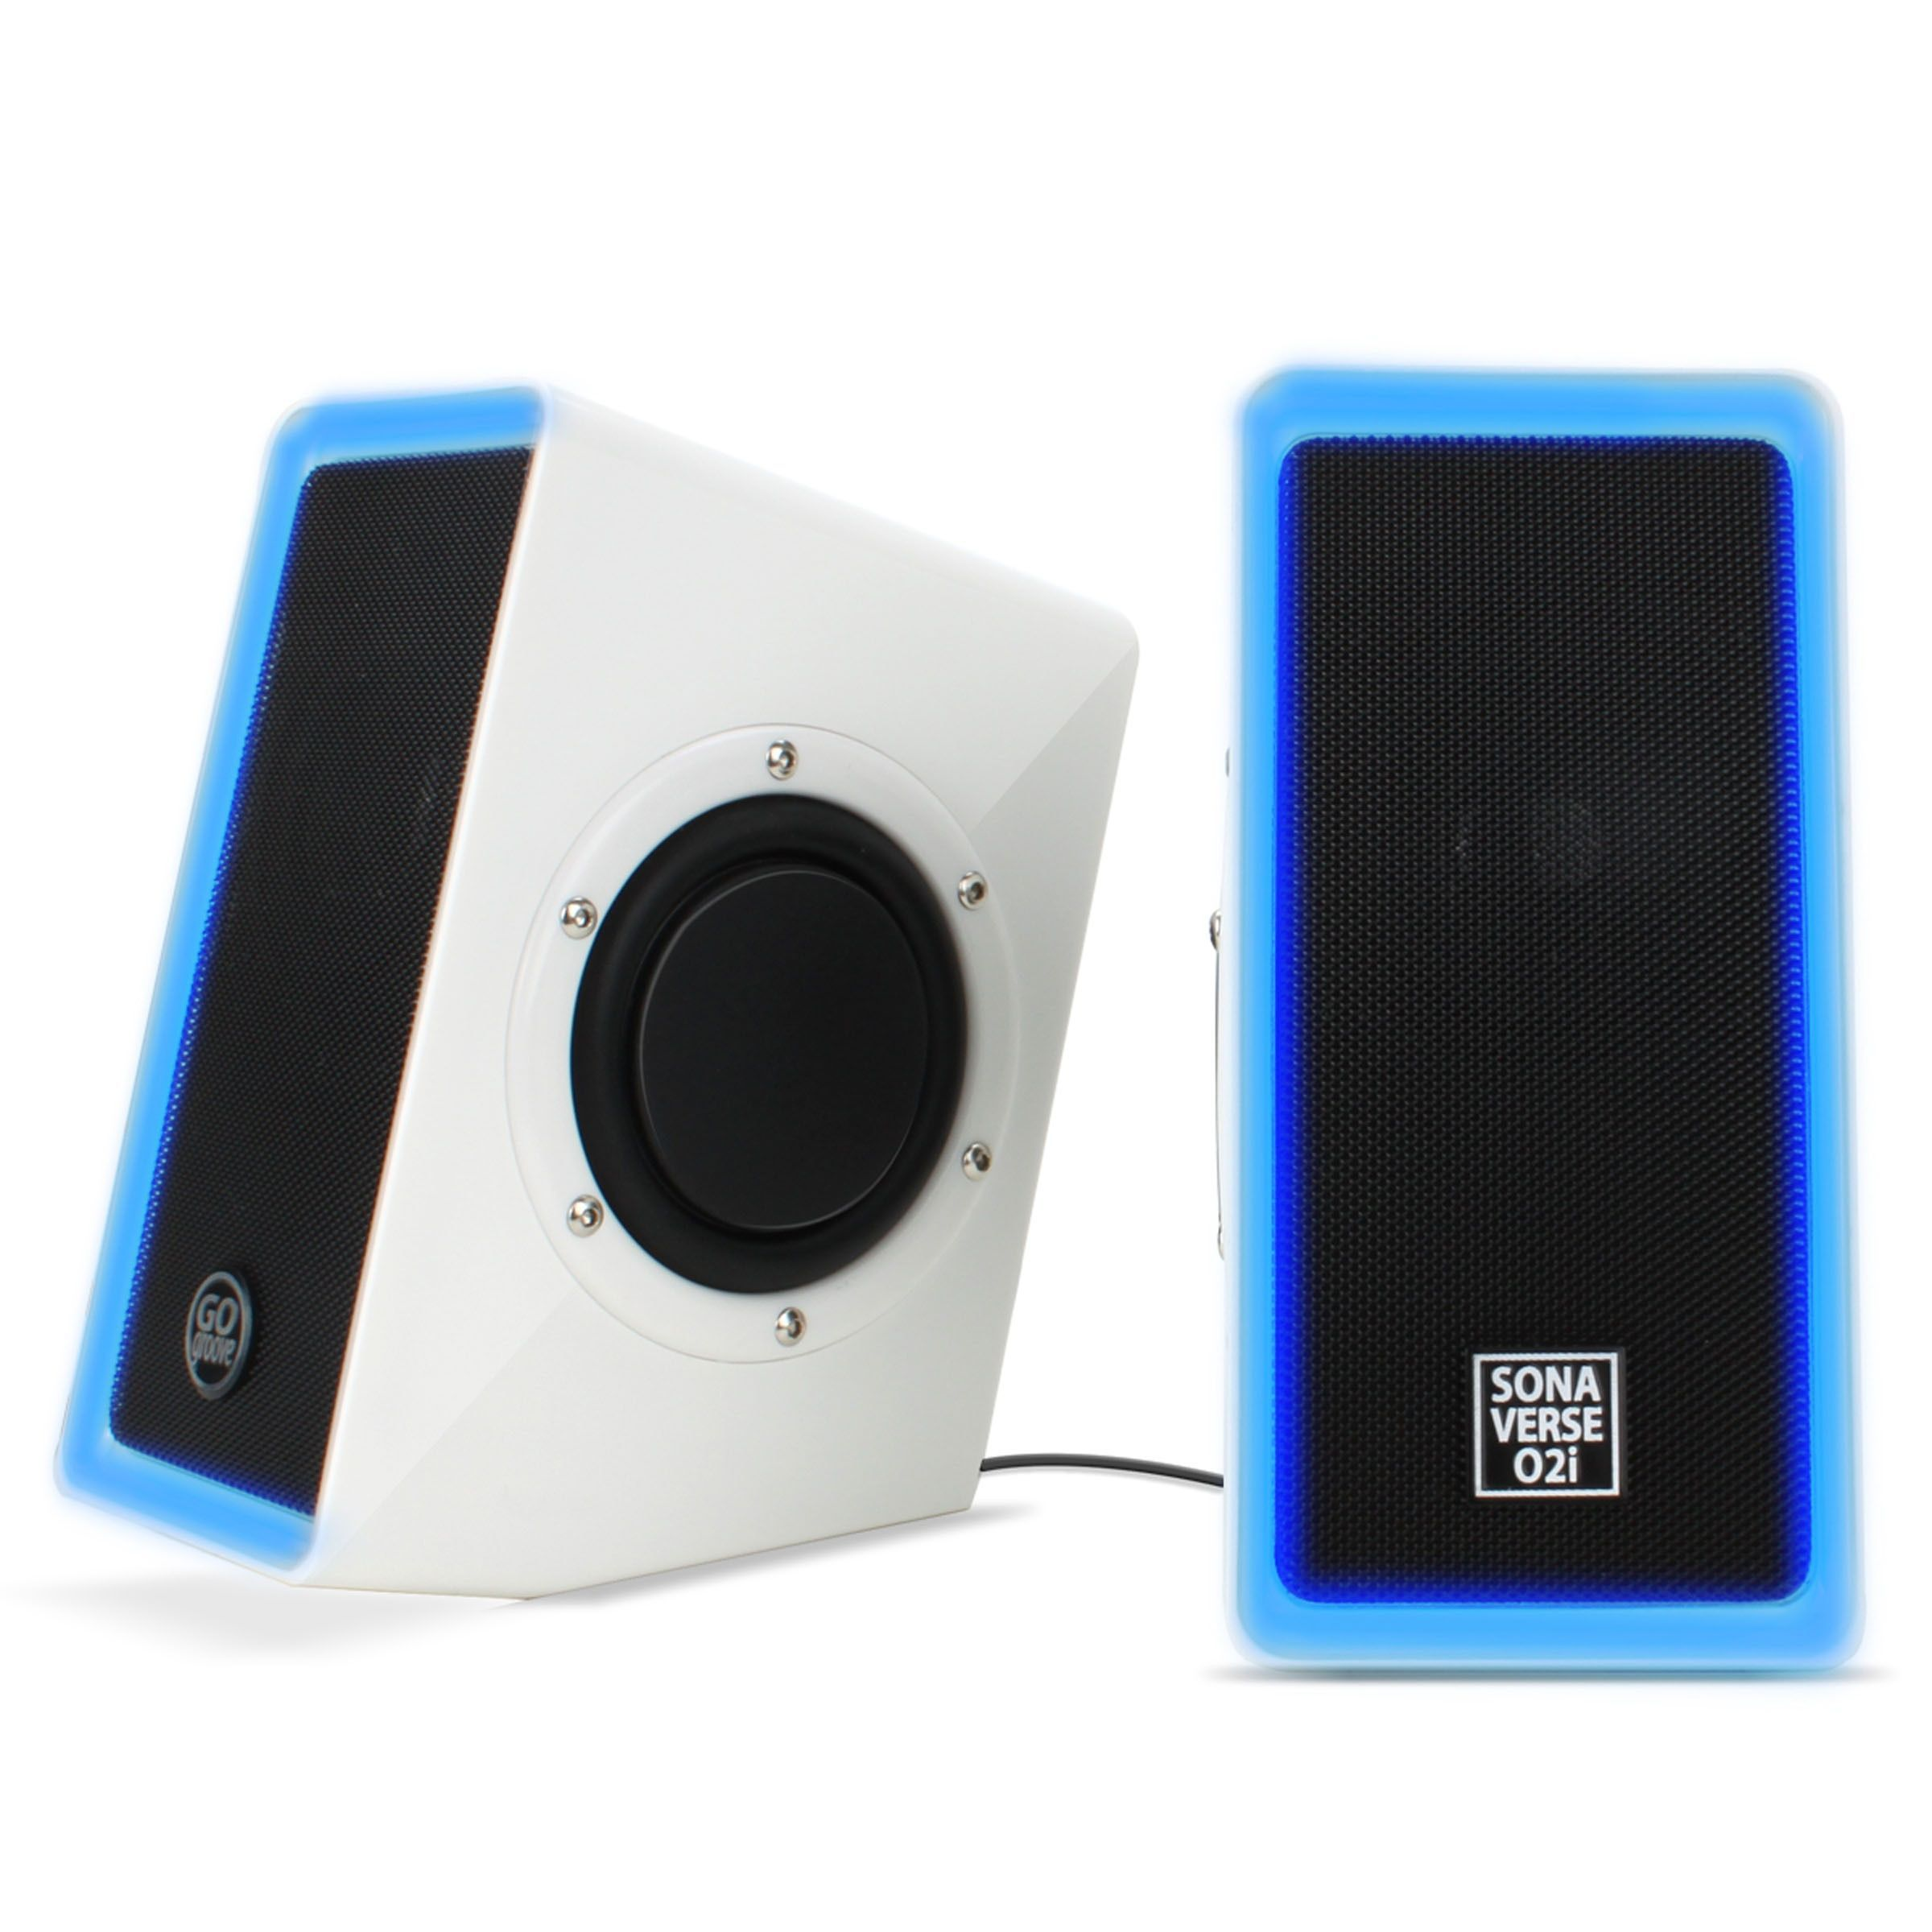 GOgroove O2i USB Multimedia Computer Speakers with Dual Drivers for Gaming Computers, #GGSVO2I100WTEW